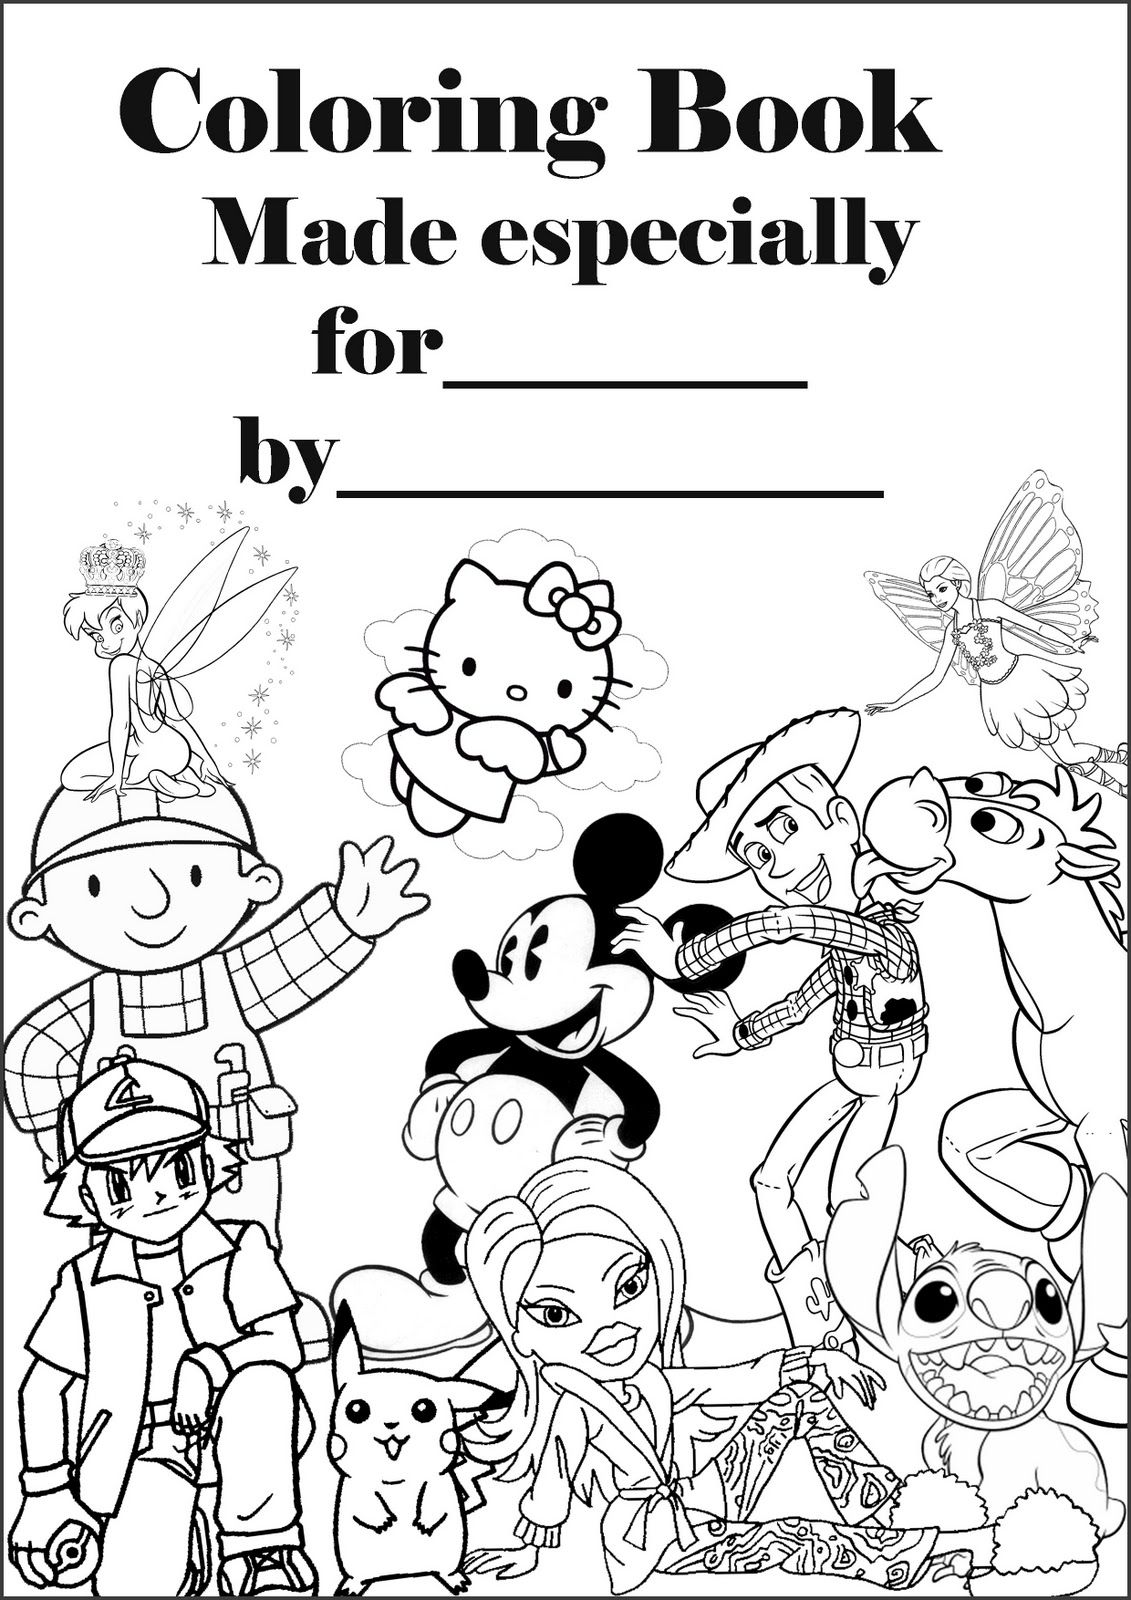 kids colouring make your own coloring book print this cover and a dozen or so - Kids Colouring Books